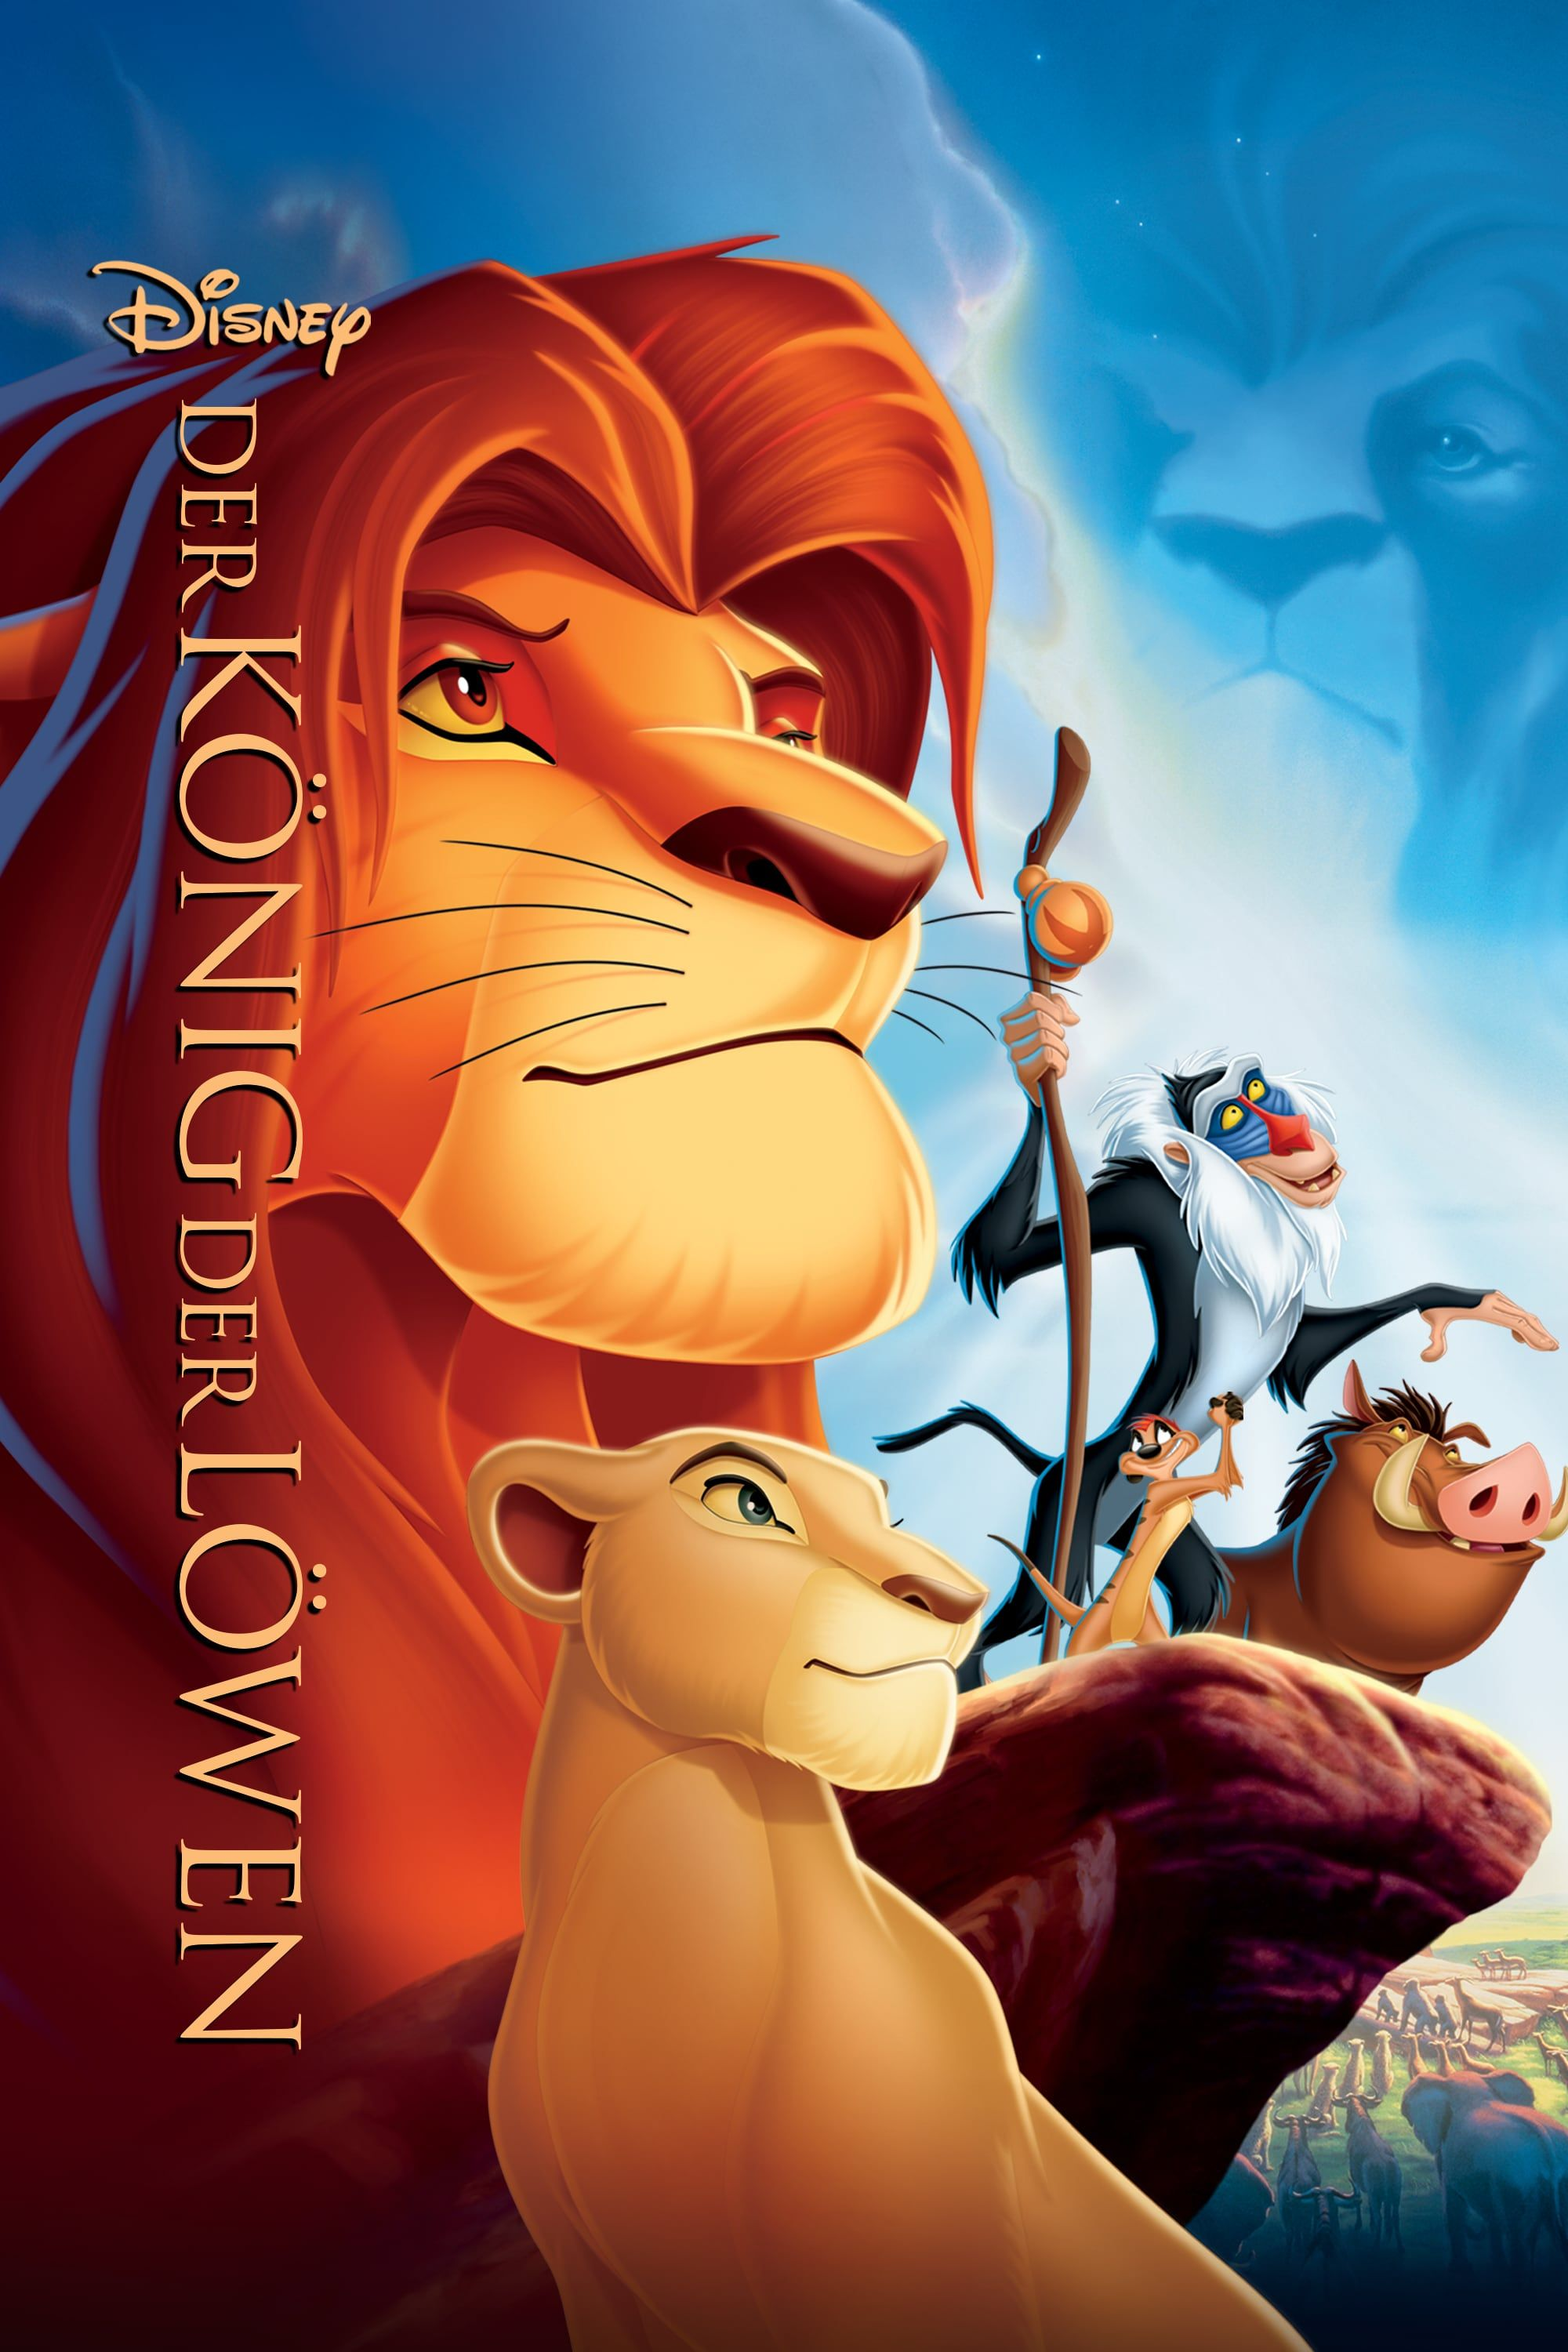 Le Roi Lion 2 Film Complet Vf Streaming